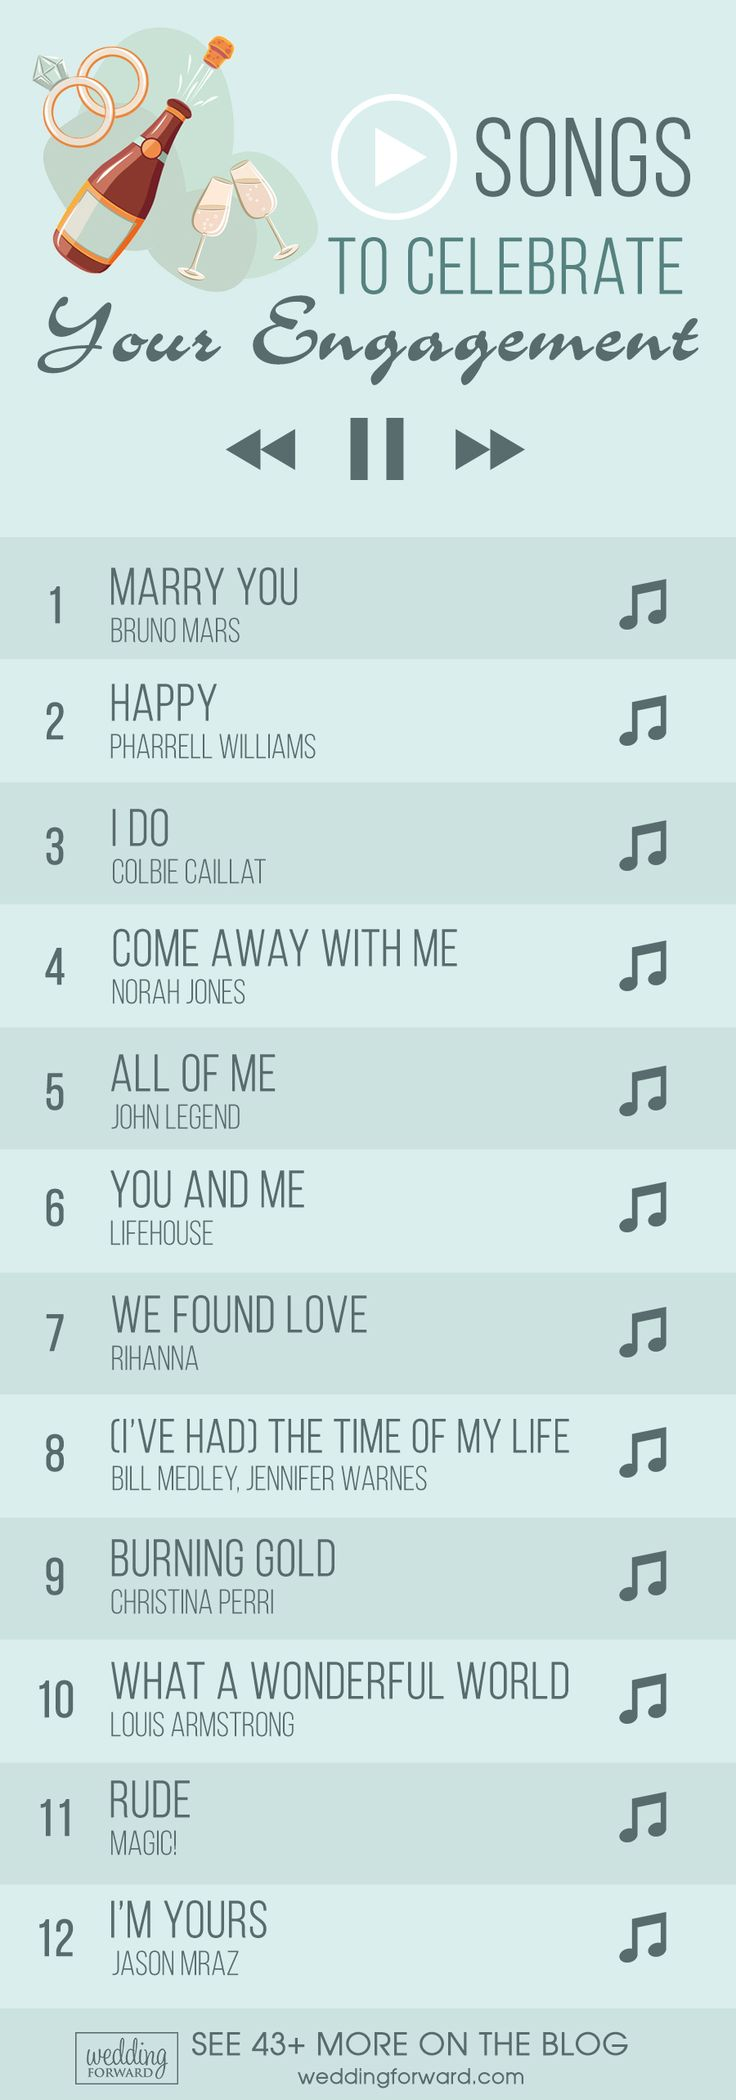 55 Top Engagement Songs For Your Party ❤ It's time to start thinking about engagement party music and playlist. Here you find 3 playlists of engagement songs that help you make your engagement party unforgettable. See more: http://www.weddingforward.com/engagement-songs/ #wedding #engagement #songs #party #playlist